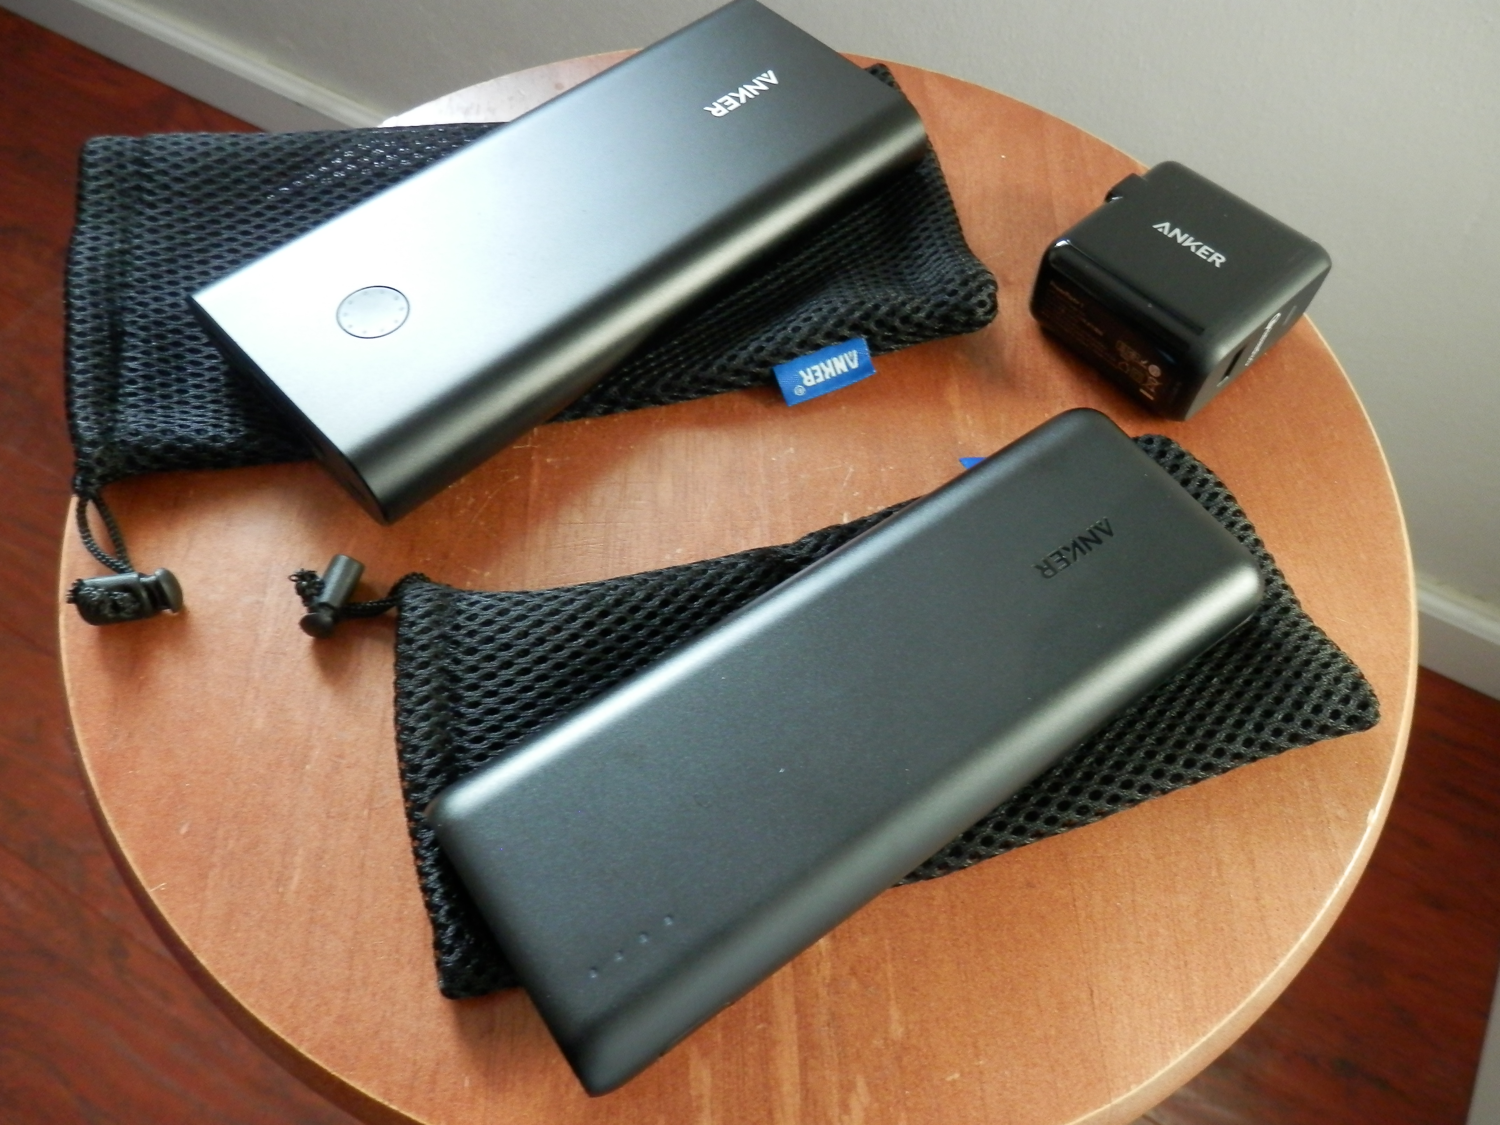 Anker PowerCore Products